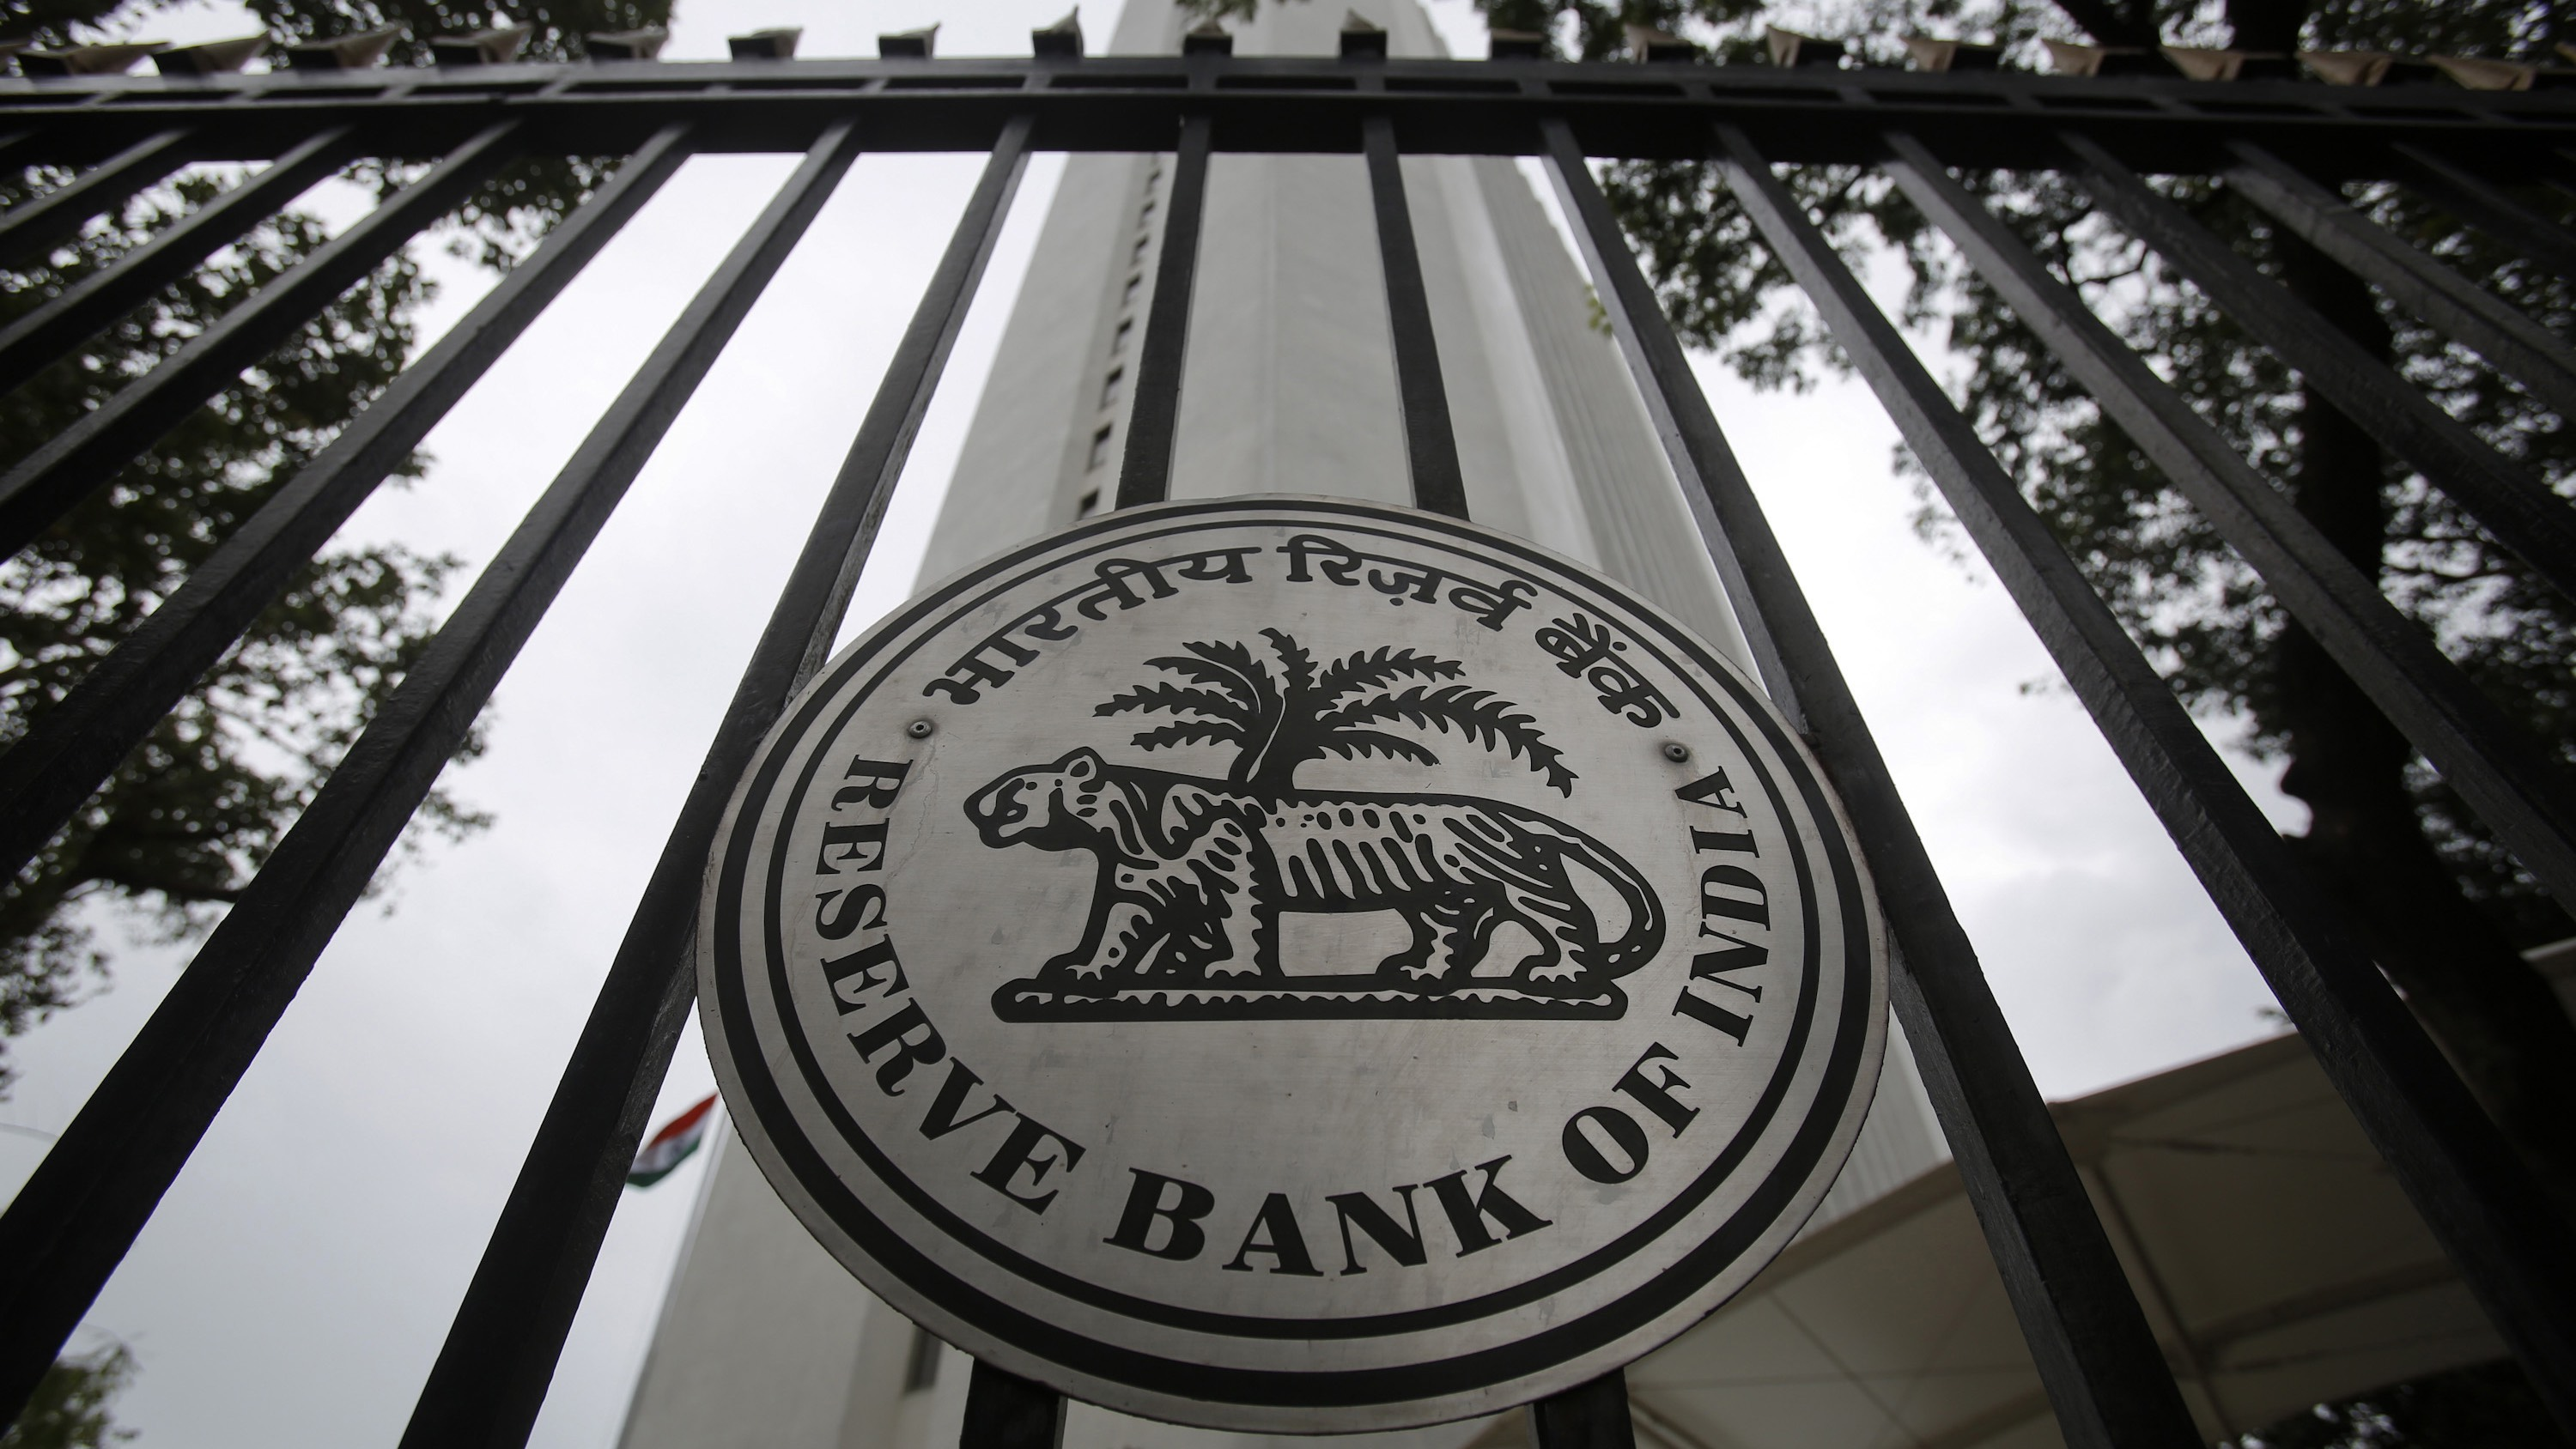 The Reserve Bank of India (RBI) seal is pictured on a gate outside the RBI headquarters in Mumbai July 30, 2013. India's central bank left interest rates unchanged on Tuesday as it supports a battered rupee but said it will roll back recent liquidity tightening measures when stability returns to the currency market, enabling it to resume supporting growth. REUTERS/Vivek Prakash (INDIA - Tags: BUSINESS LOGO) - RTX124GY